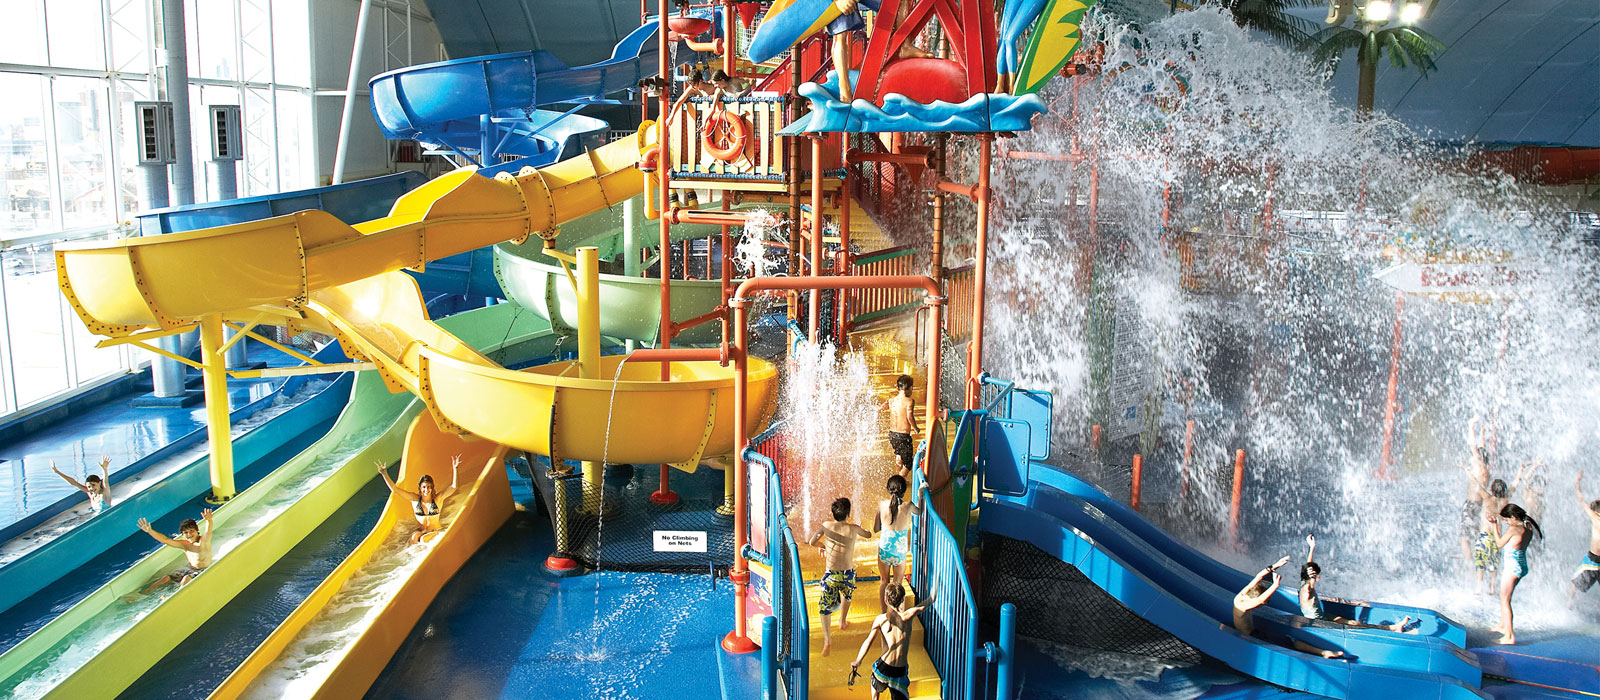 Fallsview Indoor Waterpark Falls Avenue Resort Niagara Falls Ontario